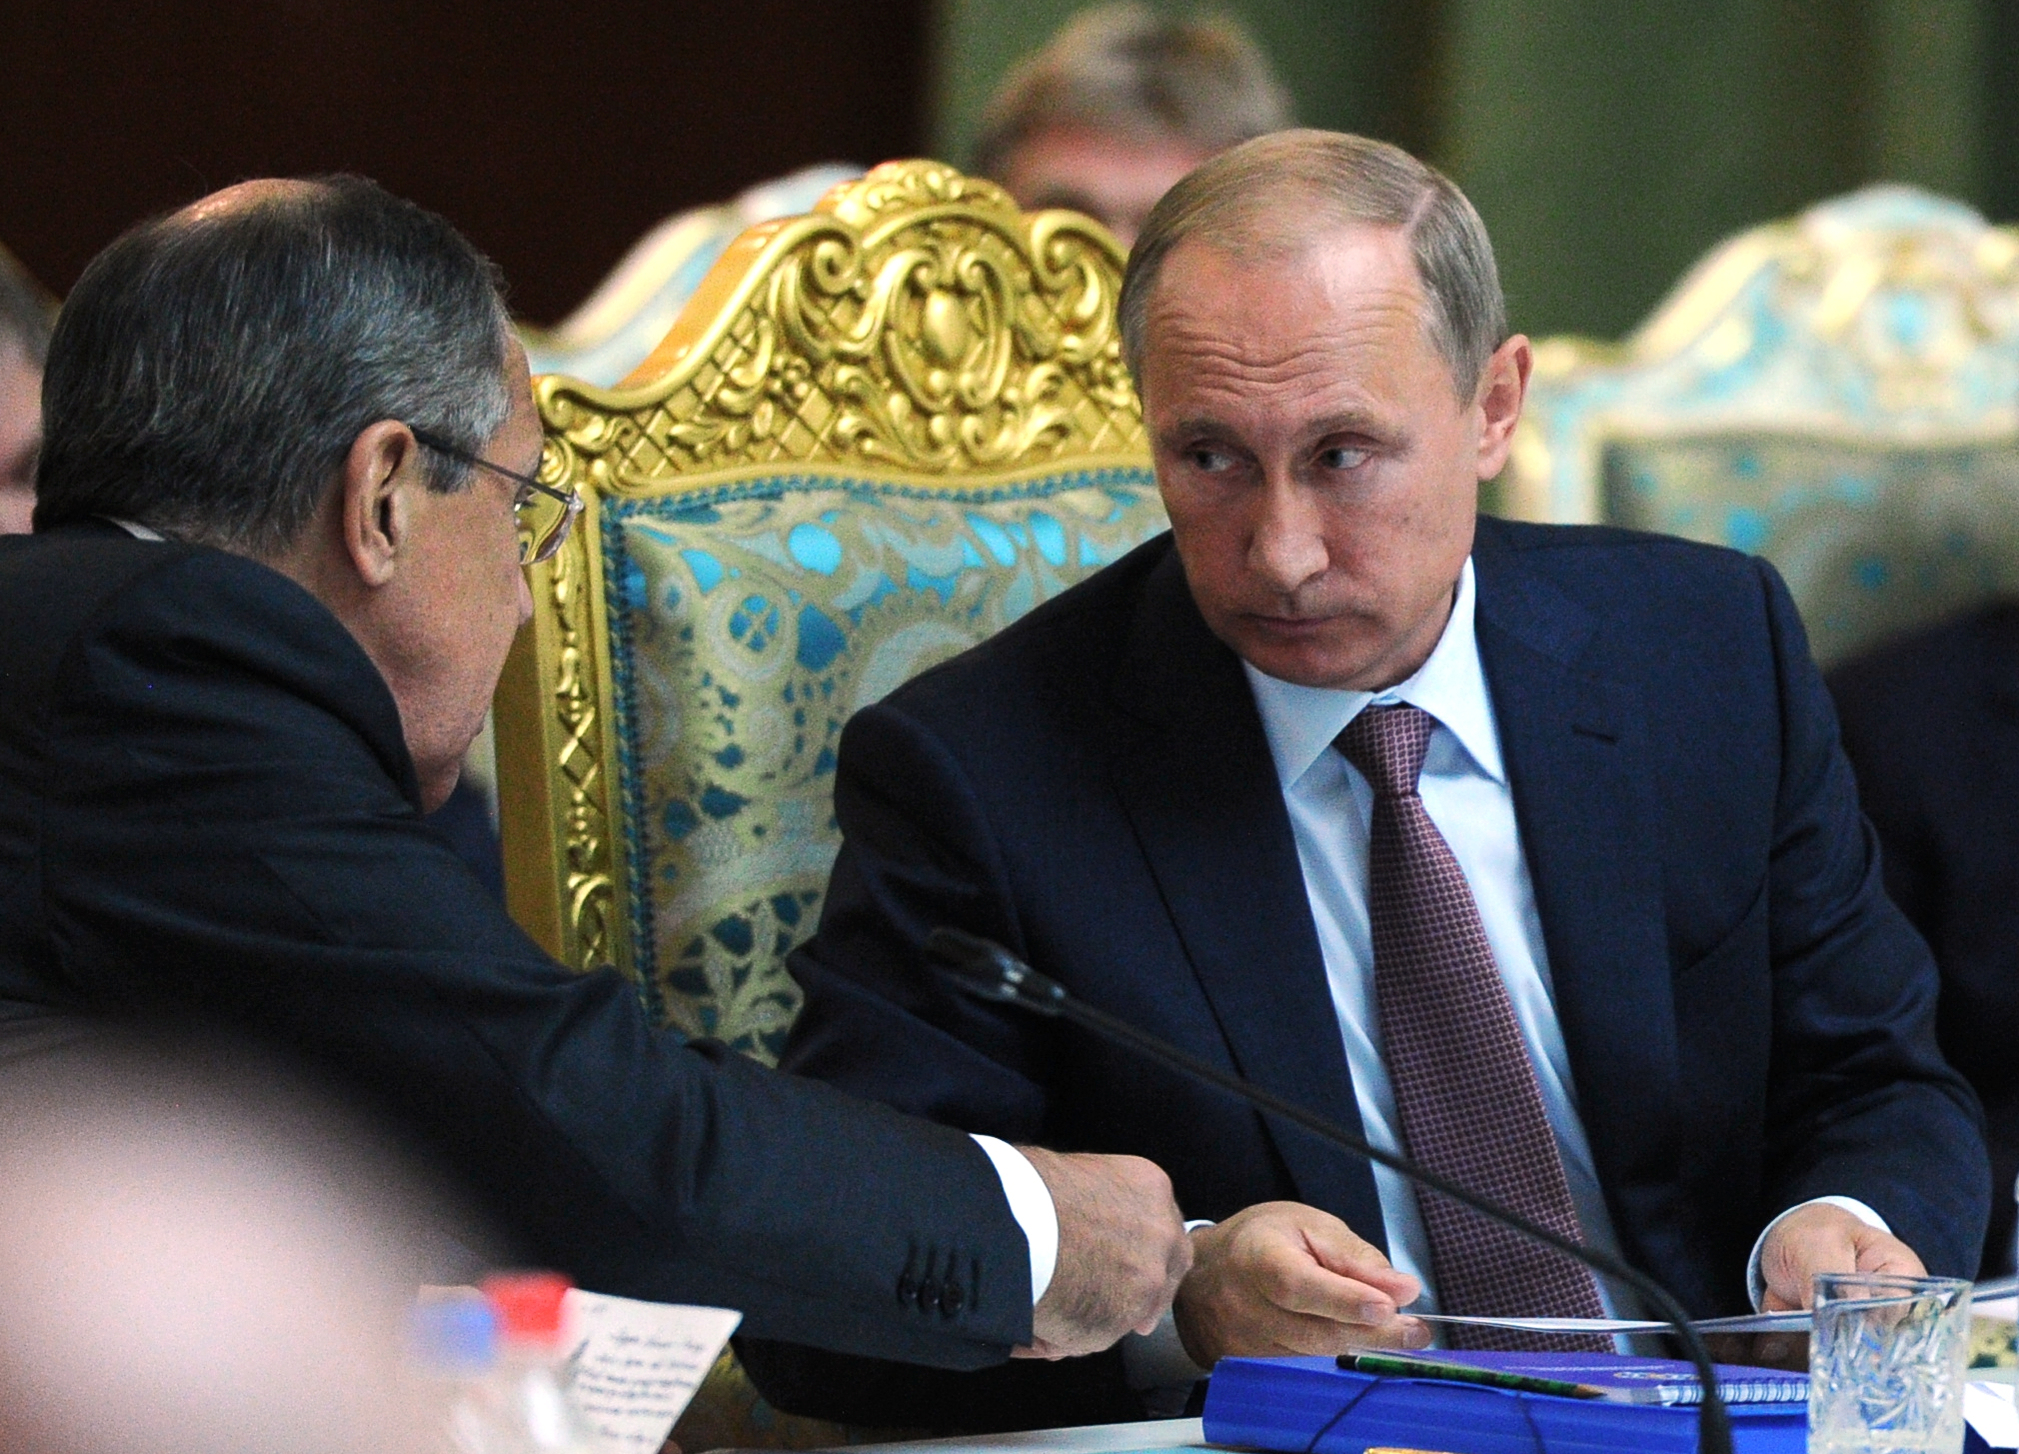 Experts warn against partnering with Russia in counterterrorism fight